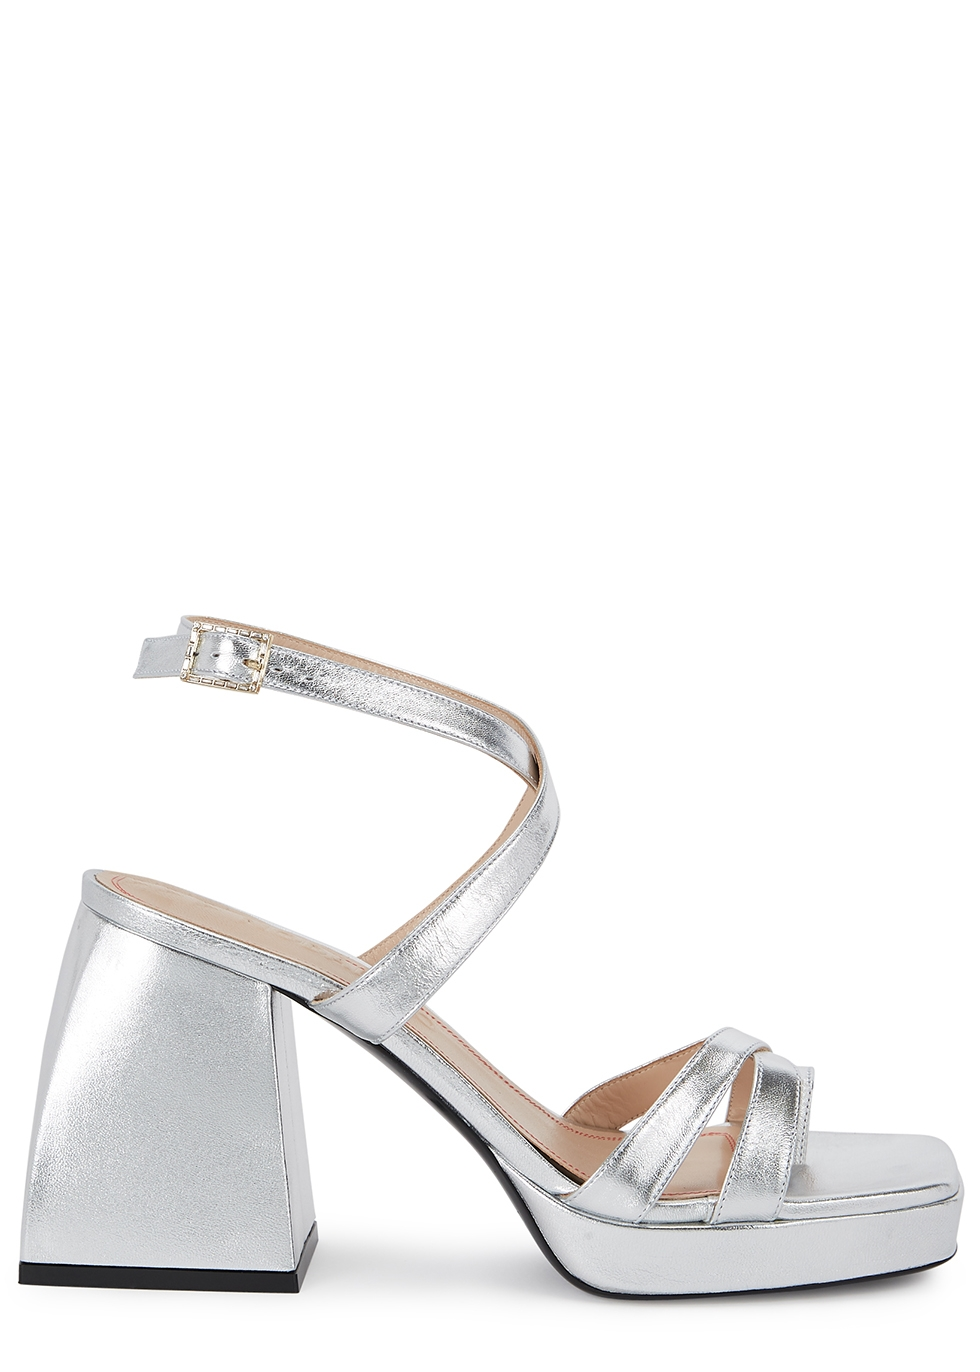 Bulla Siler 85 silver leather sandals